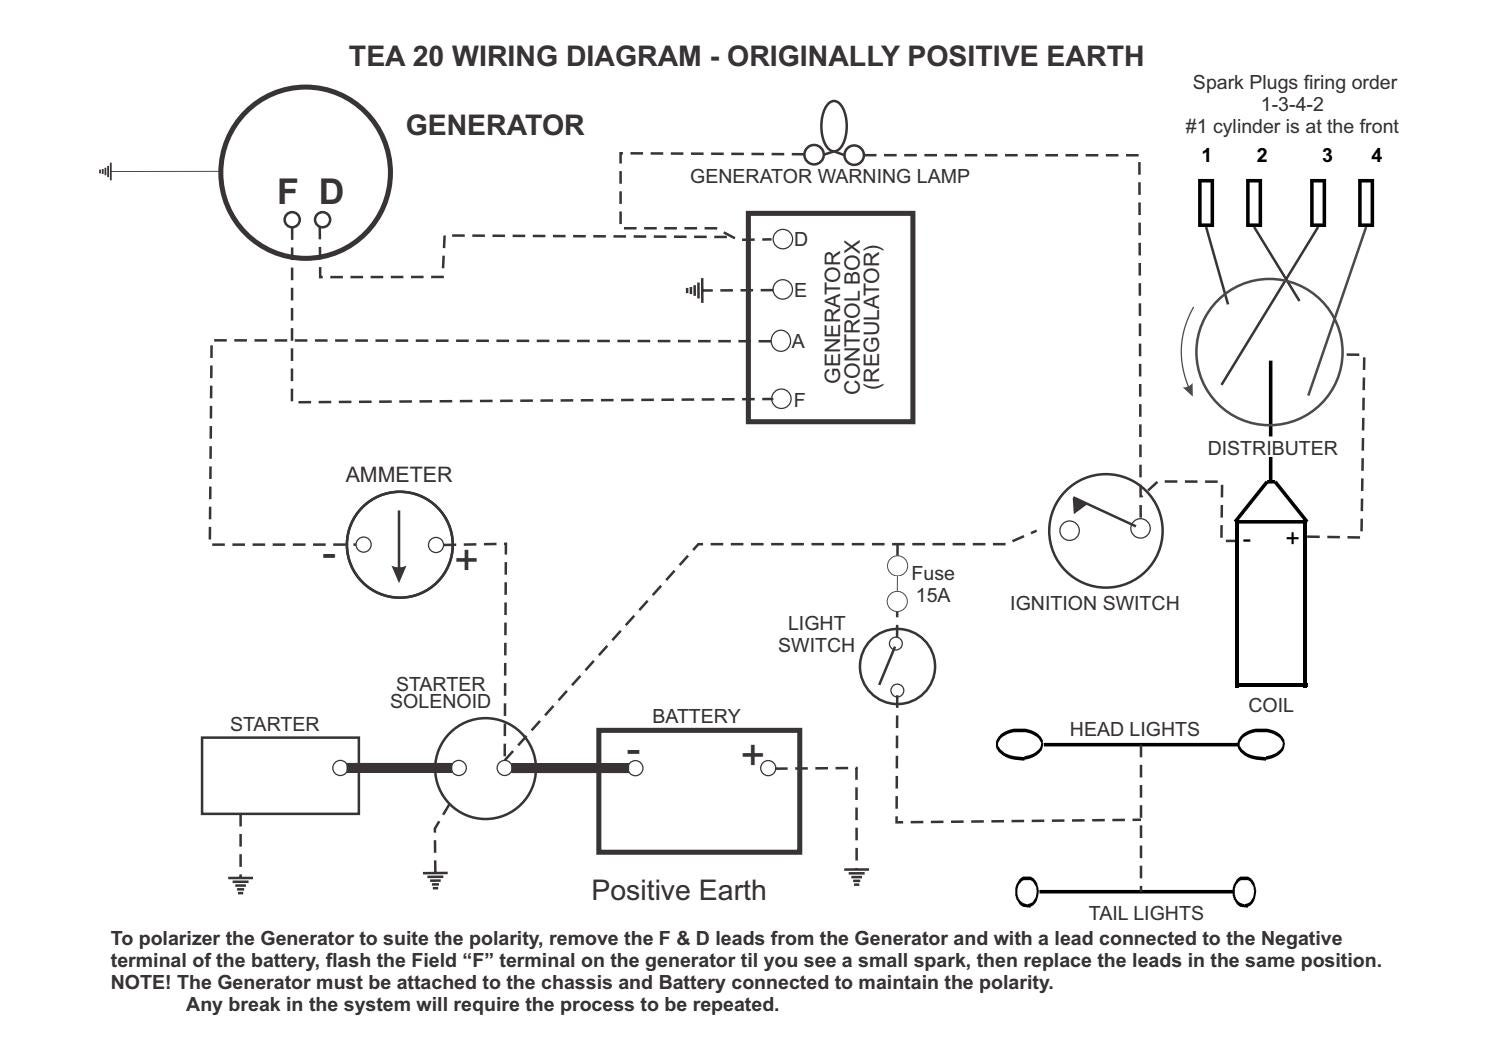 p25 wiring diagram te20 generator and alternator wiring diagrams by heads ... fuel pump wiring diagram for 1996 mustang #10